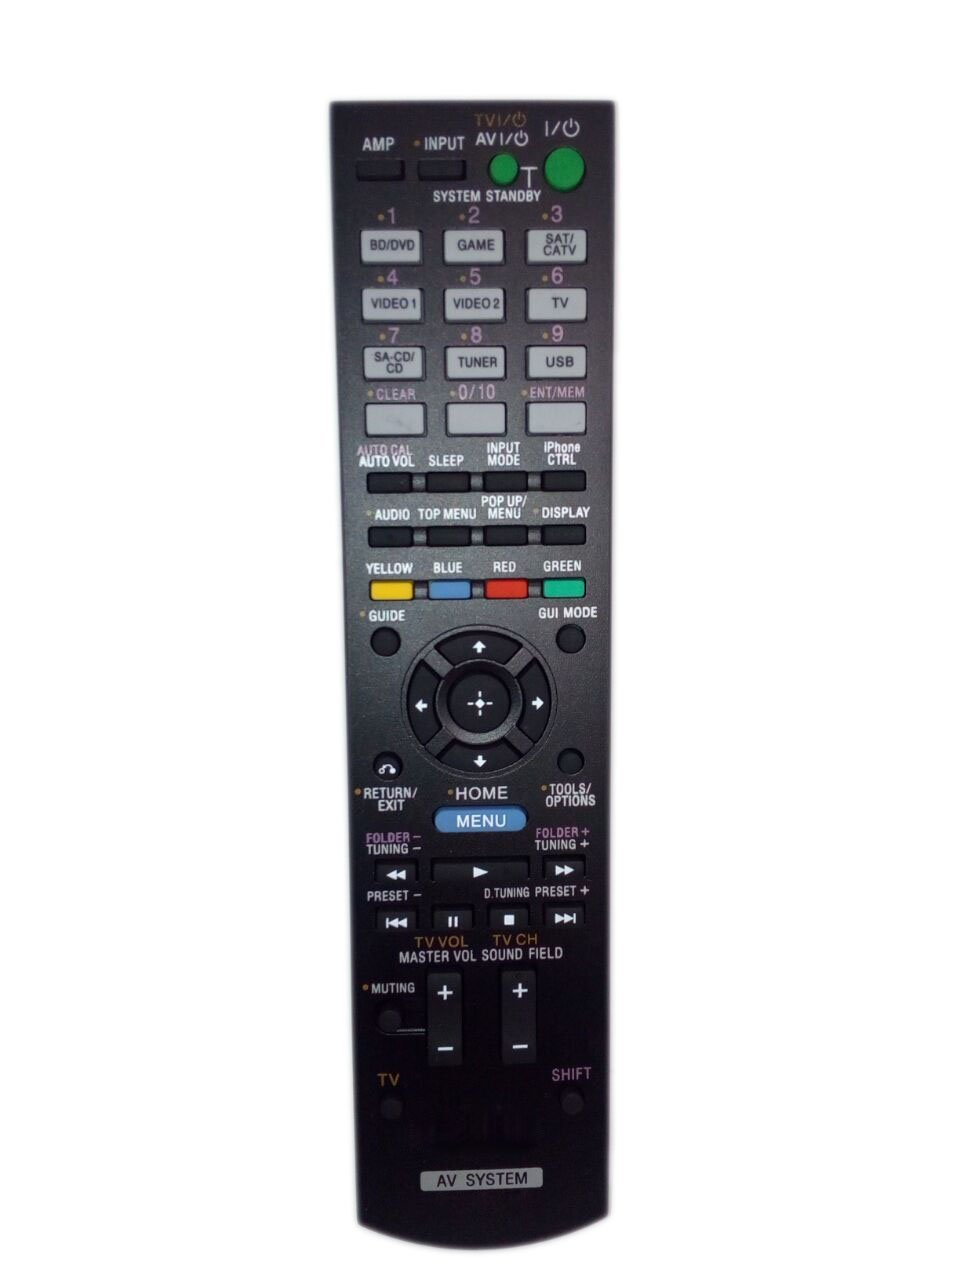 Replaced Remote Control Compatible for Sony STR-DH720 RMAAU106 148934511 RMAAU107 STR-DH830 Audio / Video AV Receiver Home Theater System by JustFine